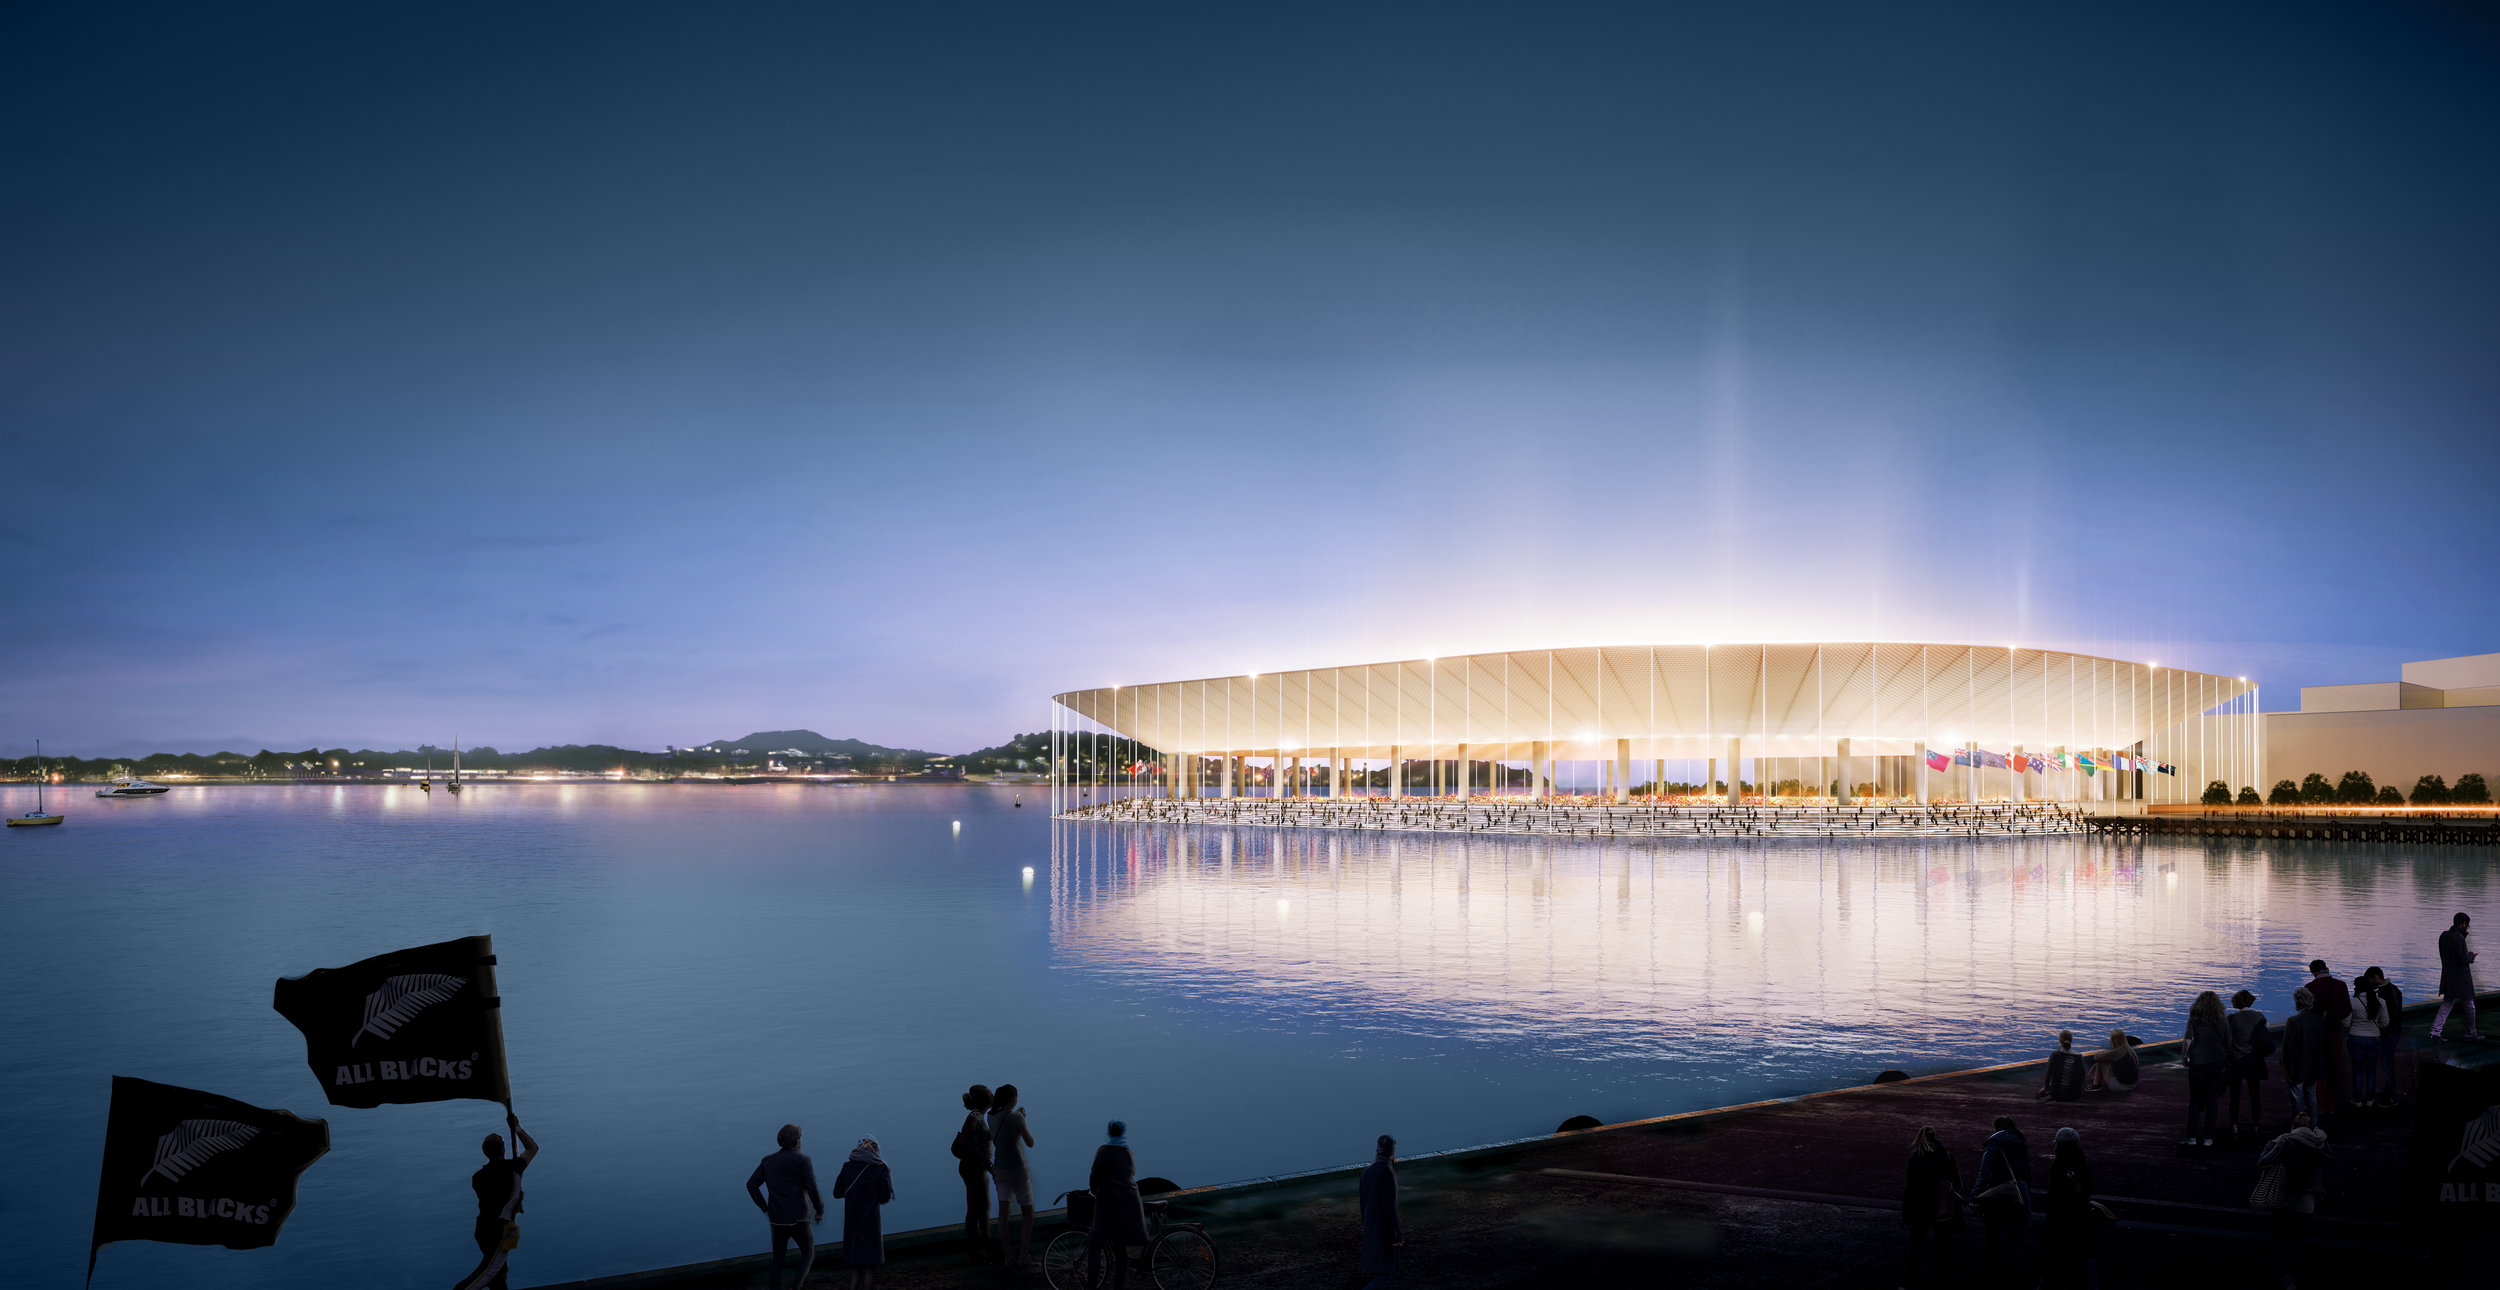 The ambitious proposal would see a 50,000-seat fully enclosed stadium built alongside a redeveloped Bledisloe Wharf.